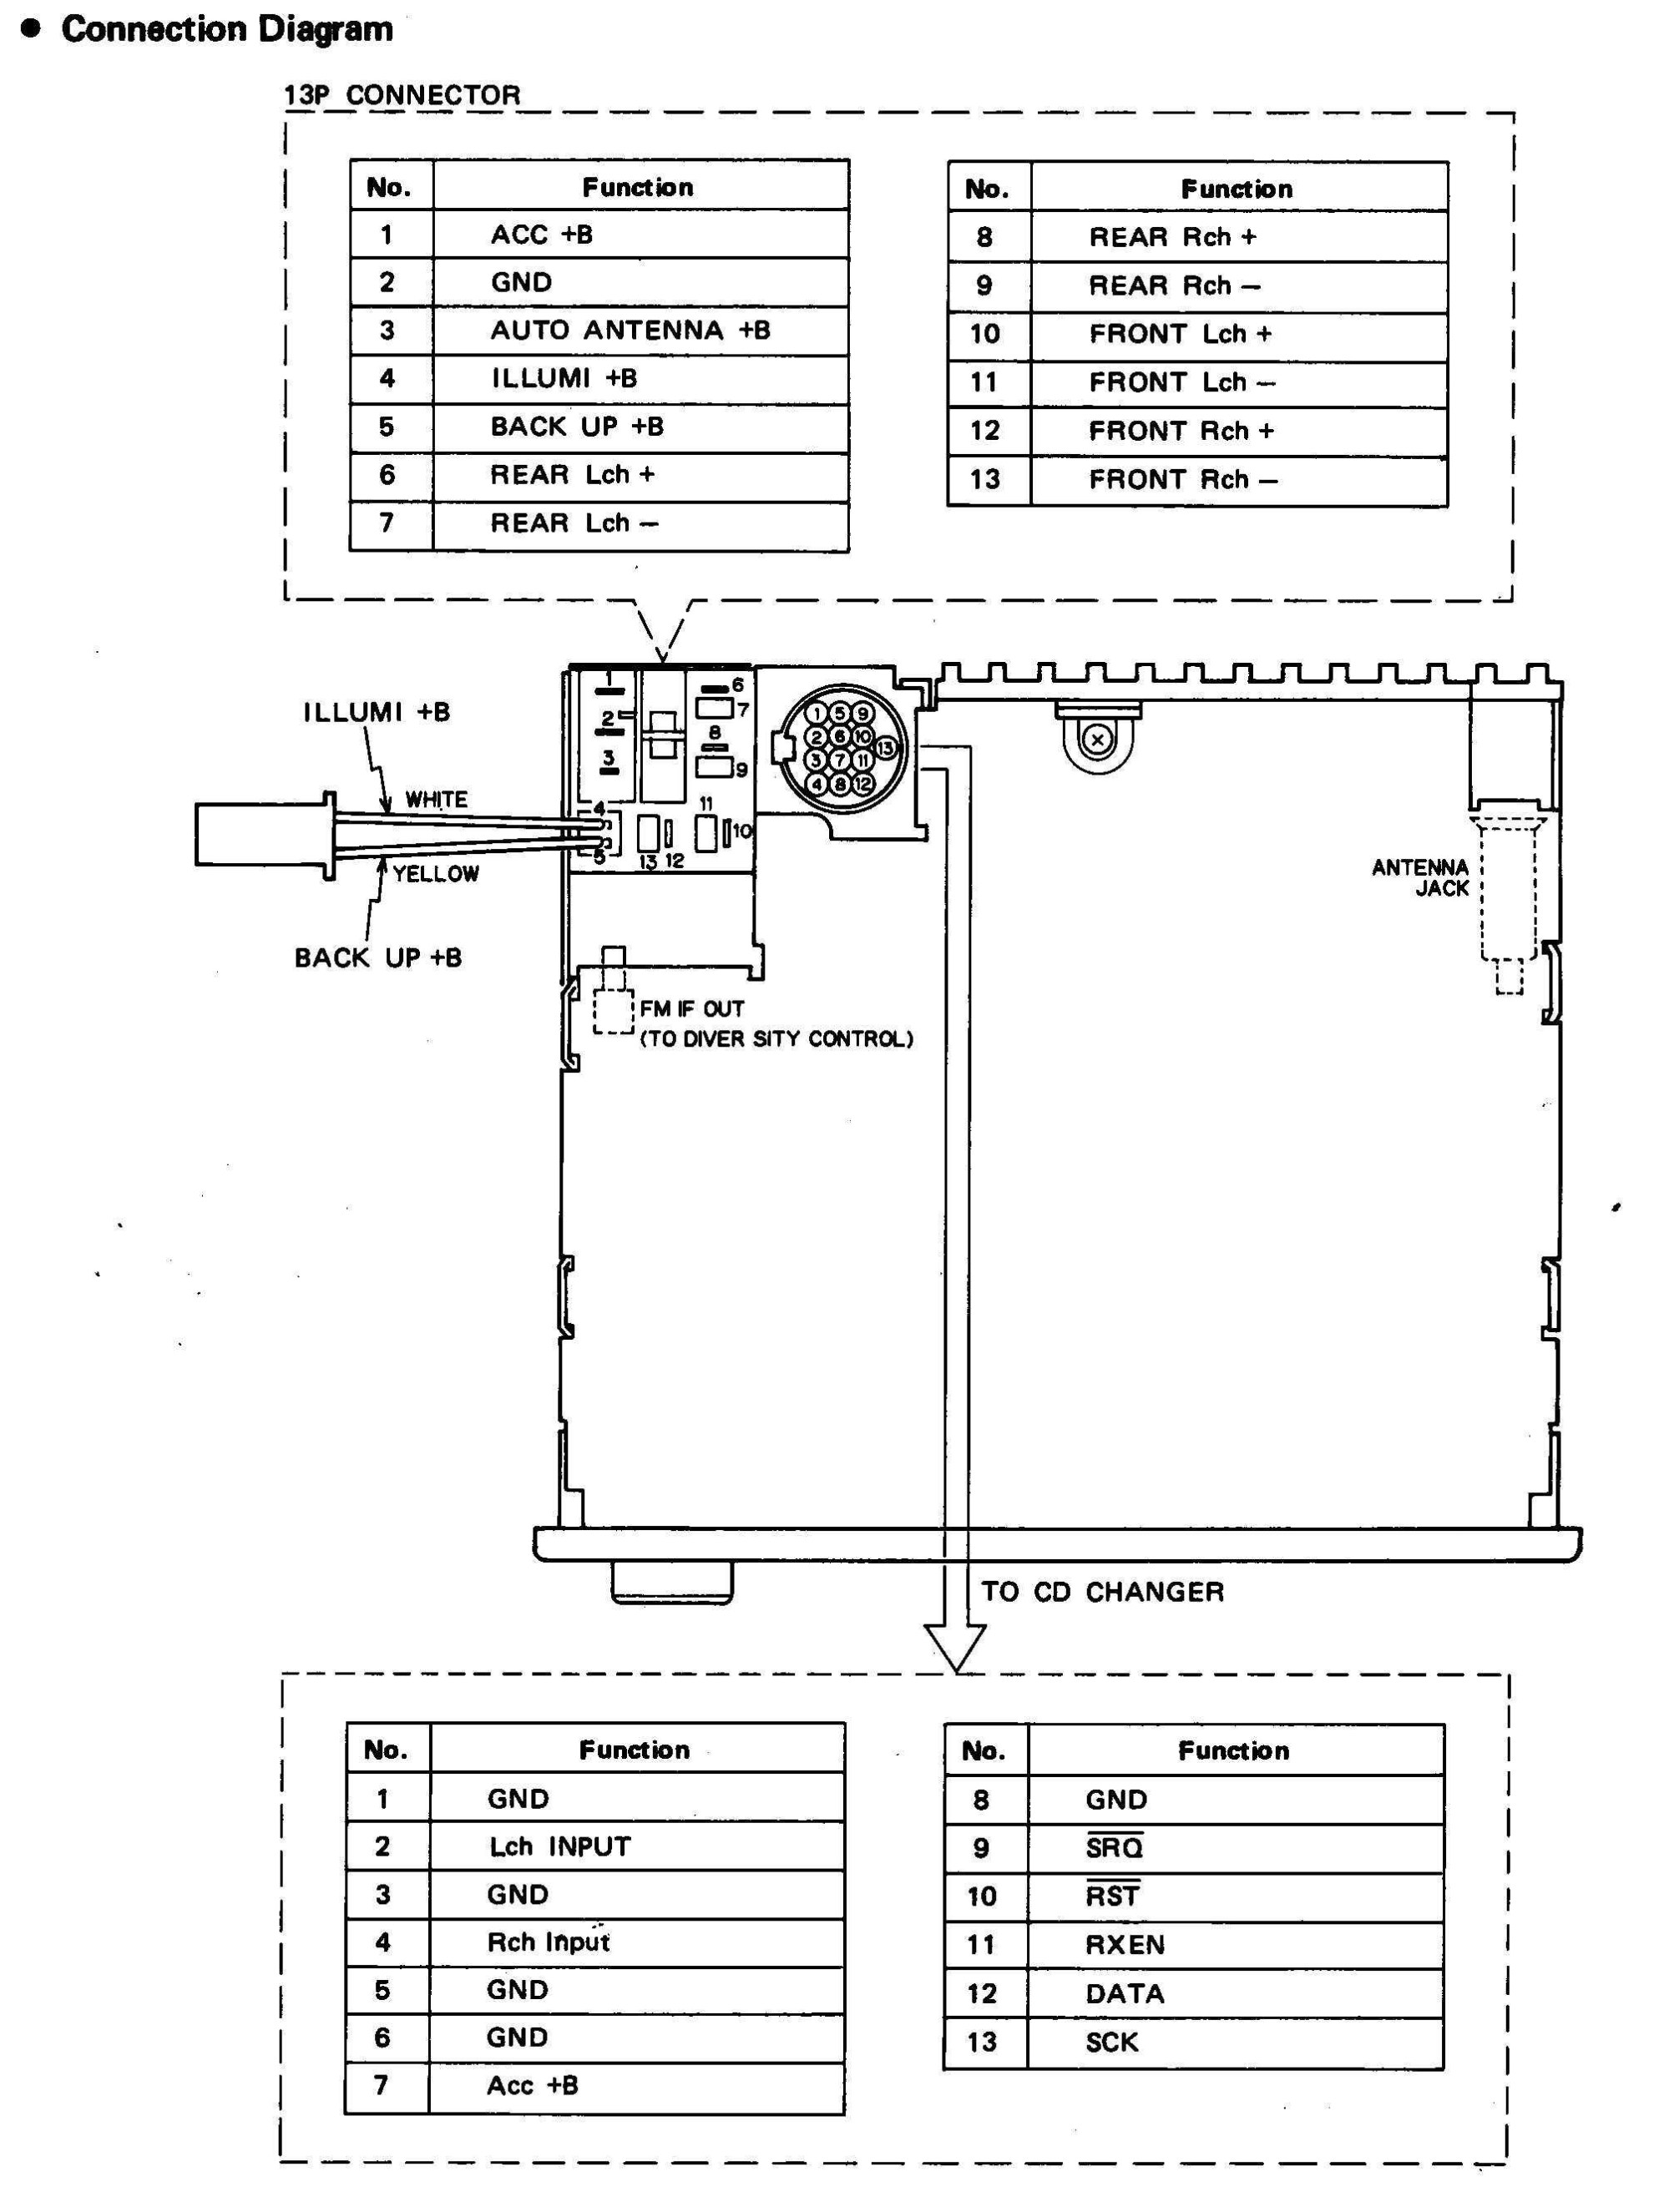 hight resolution of 1987 bmw wiring diagram auto diagram database 1987 bmw 325i engine diagram 1987 bmw 325i engine diagram